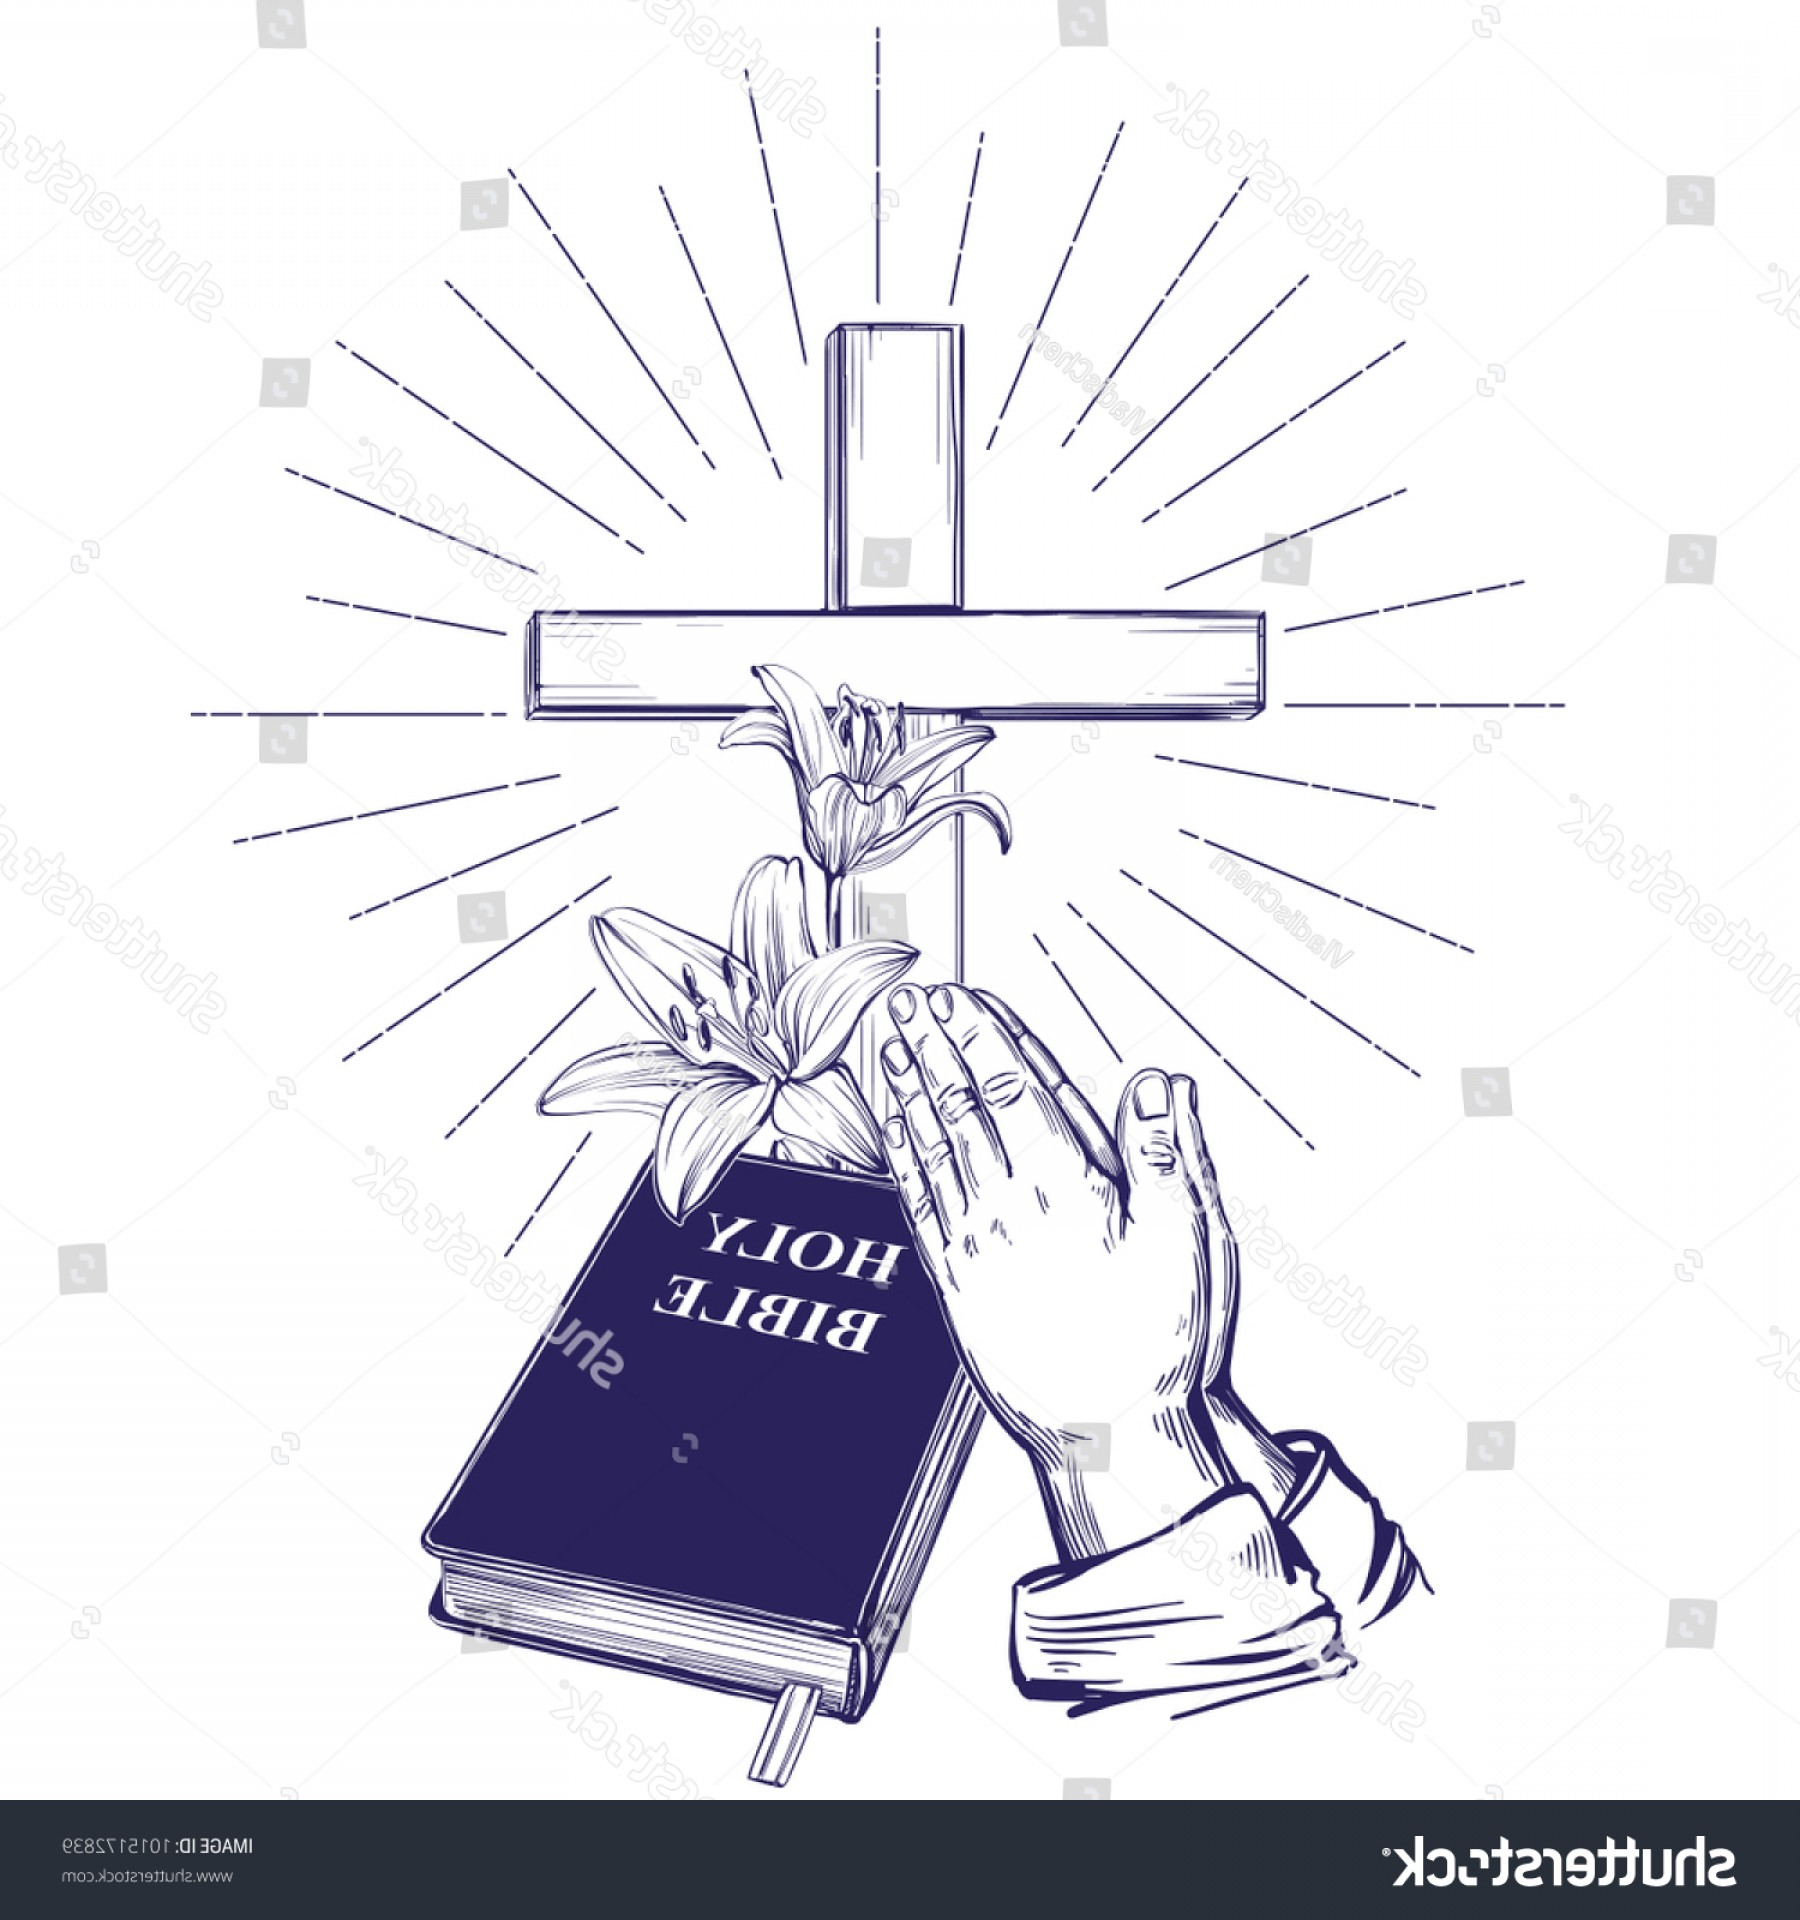 Praying Hands Vectors Shutterstock: Praying Hands Bible Gospel Crown Thorns